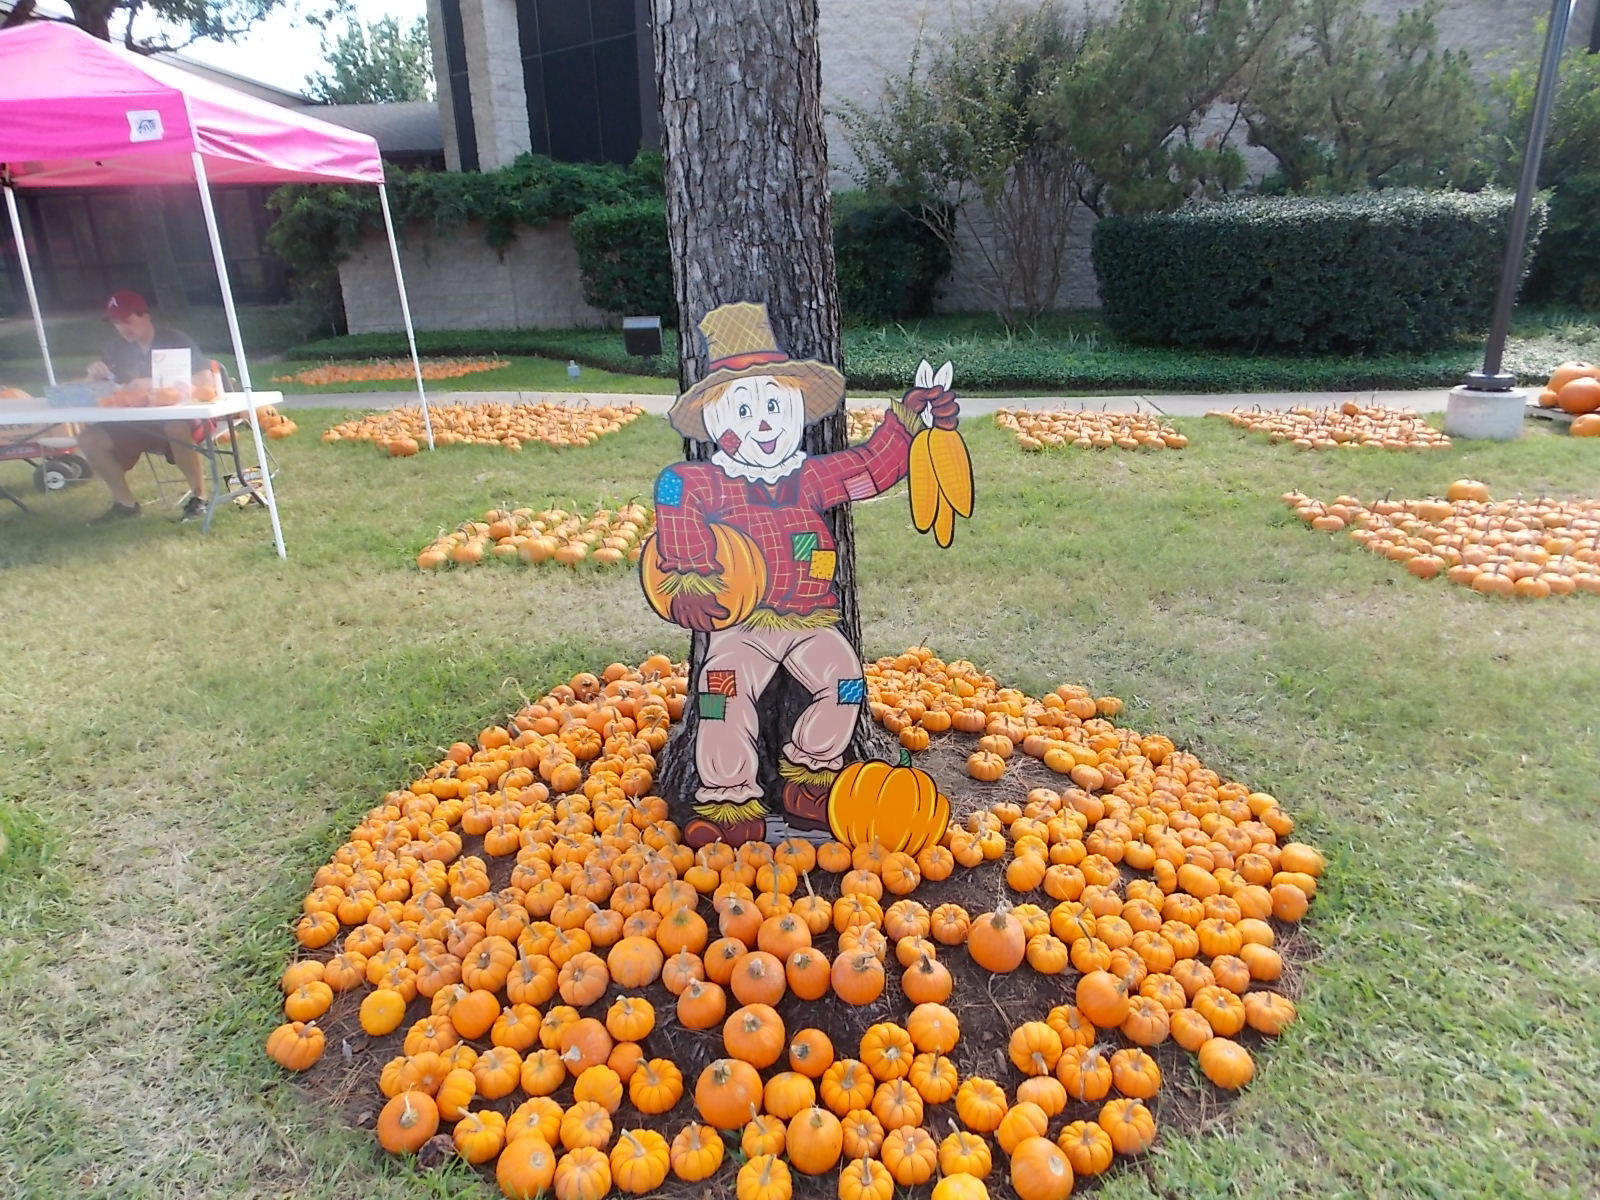 The katy texas blog: halloween event pumpkin patch in katy.